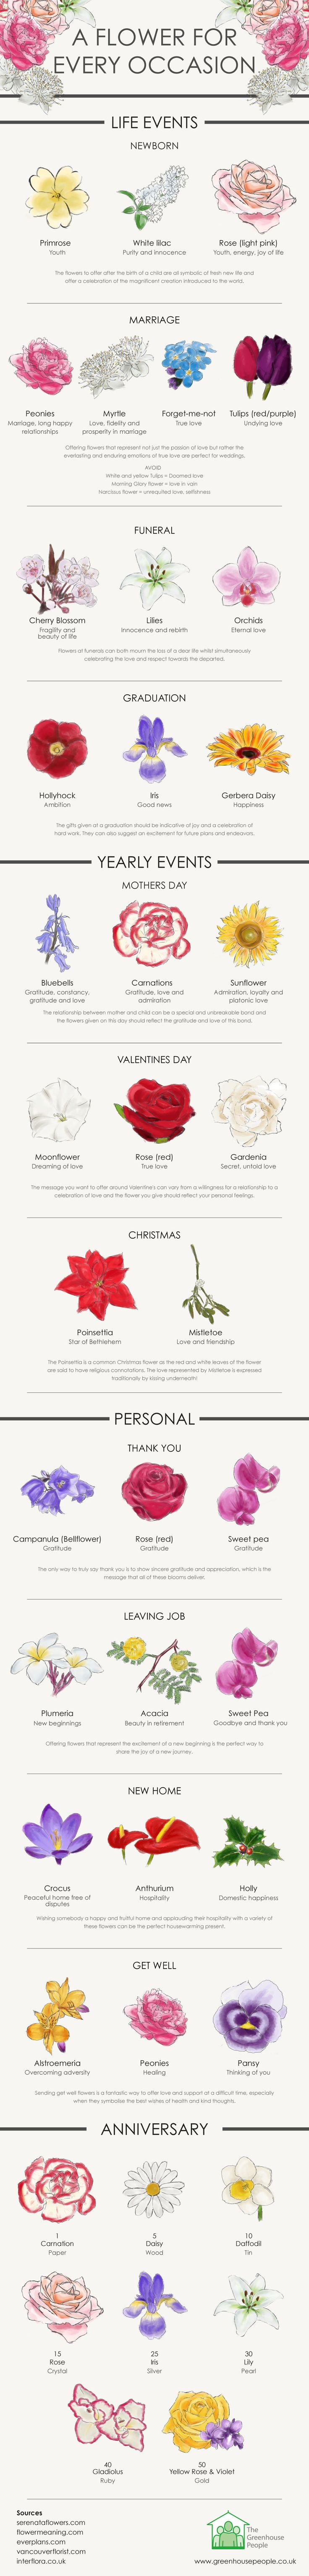 How To Choose The Perfect Flower For Your Occasion - Infographic